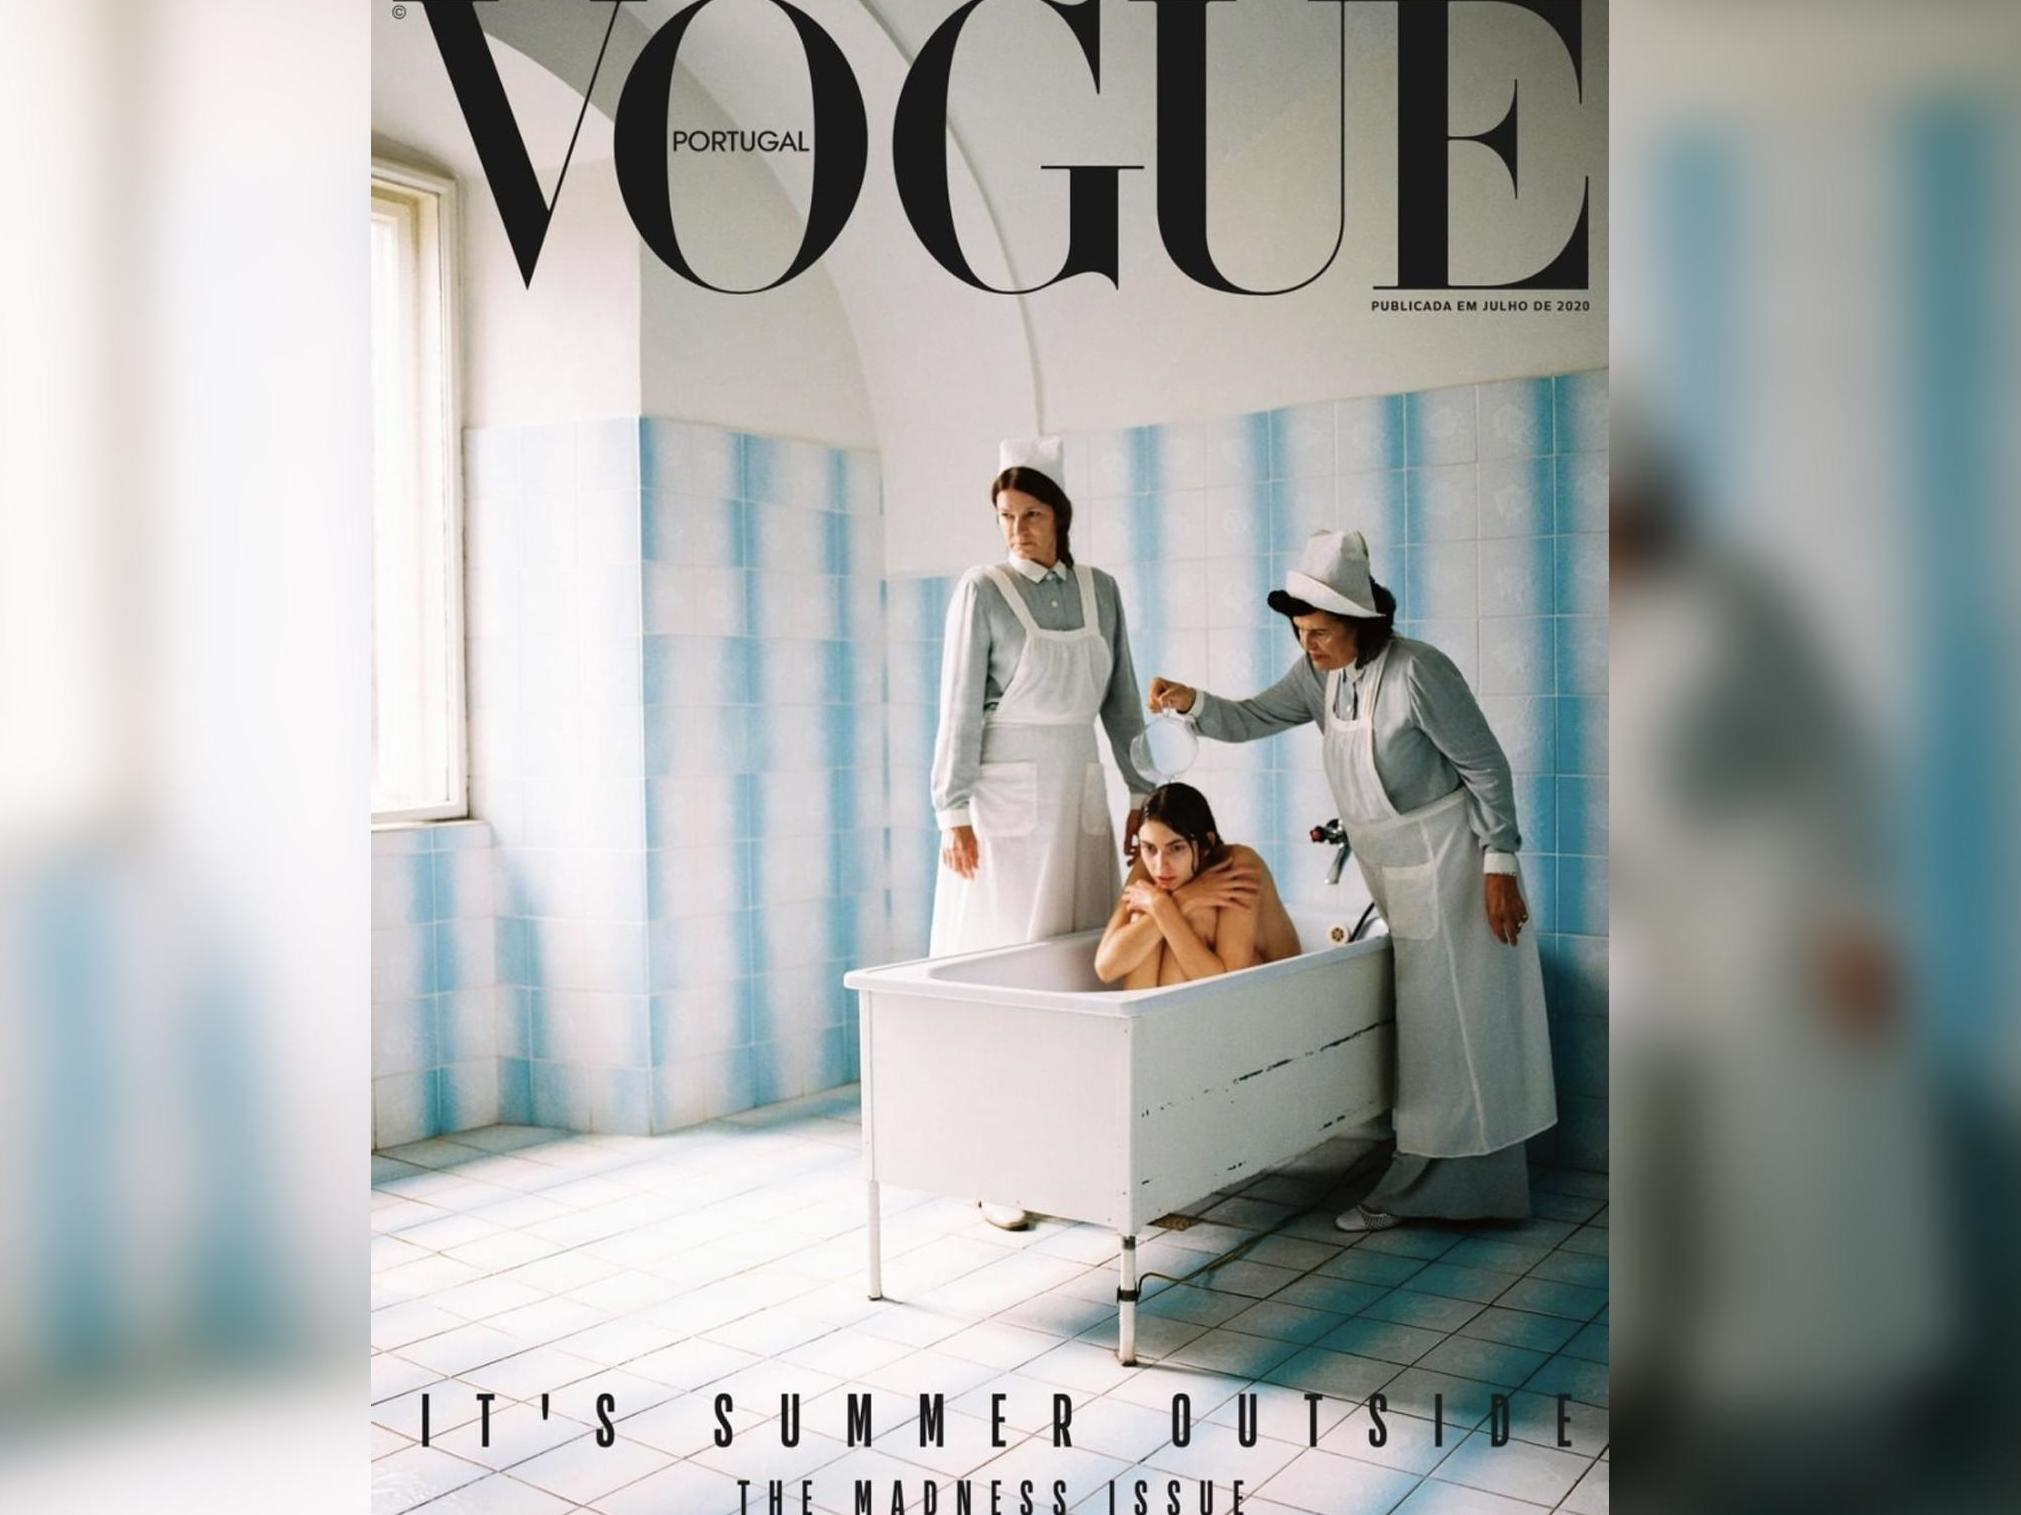 Vogue Portugal's 'bad taste' front cover made me feel better about my psychosis and OCD